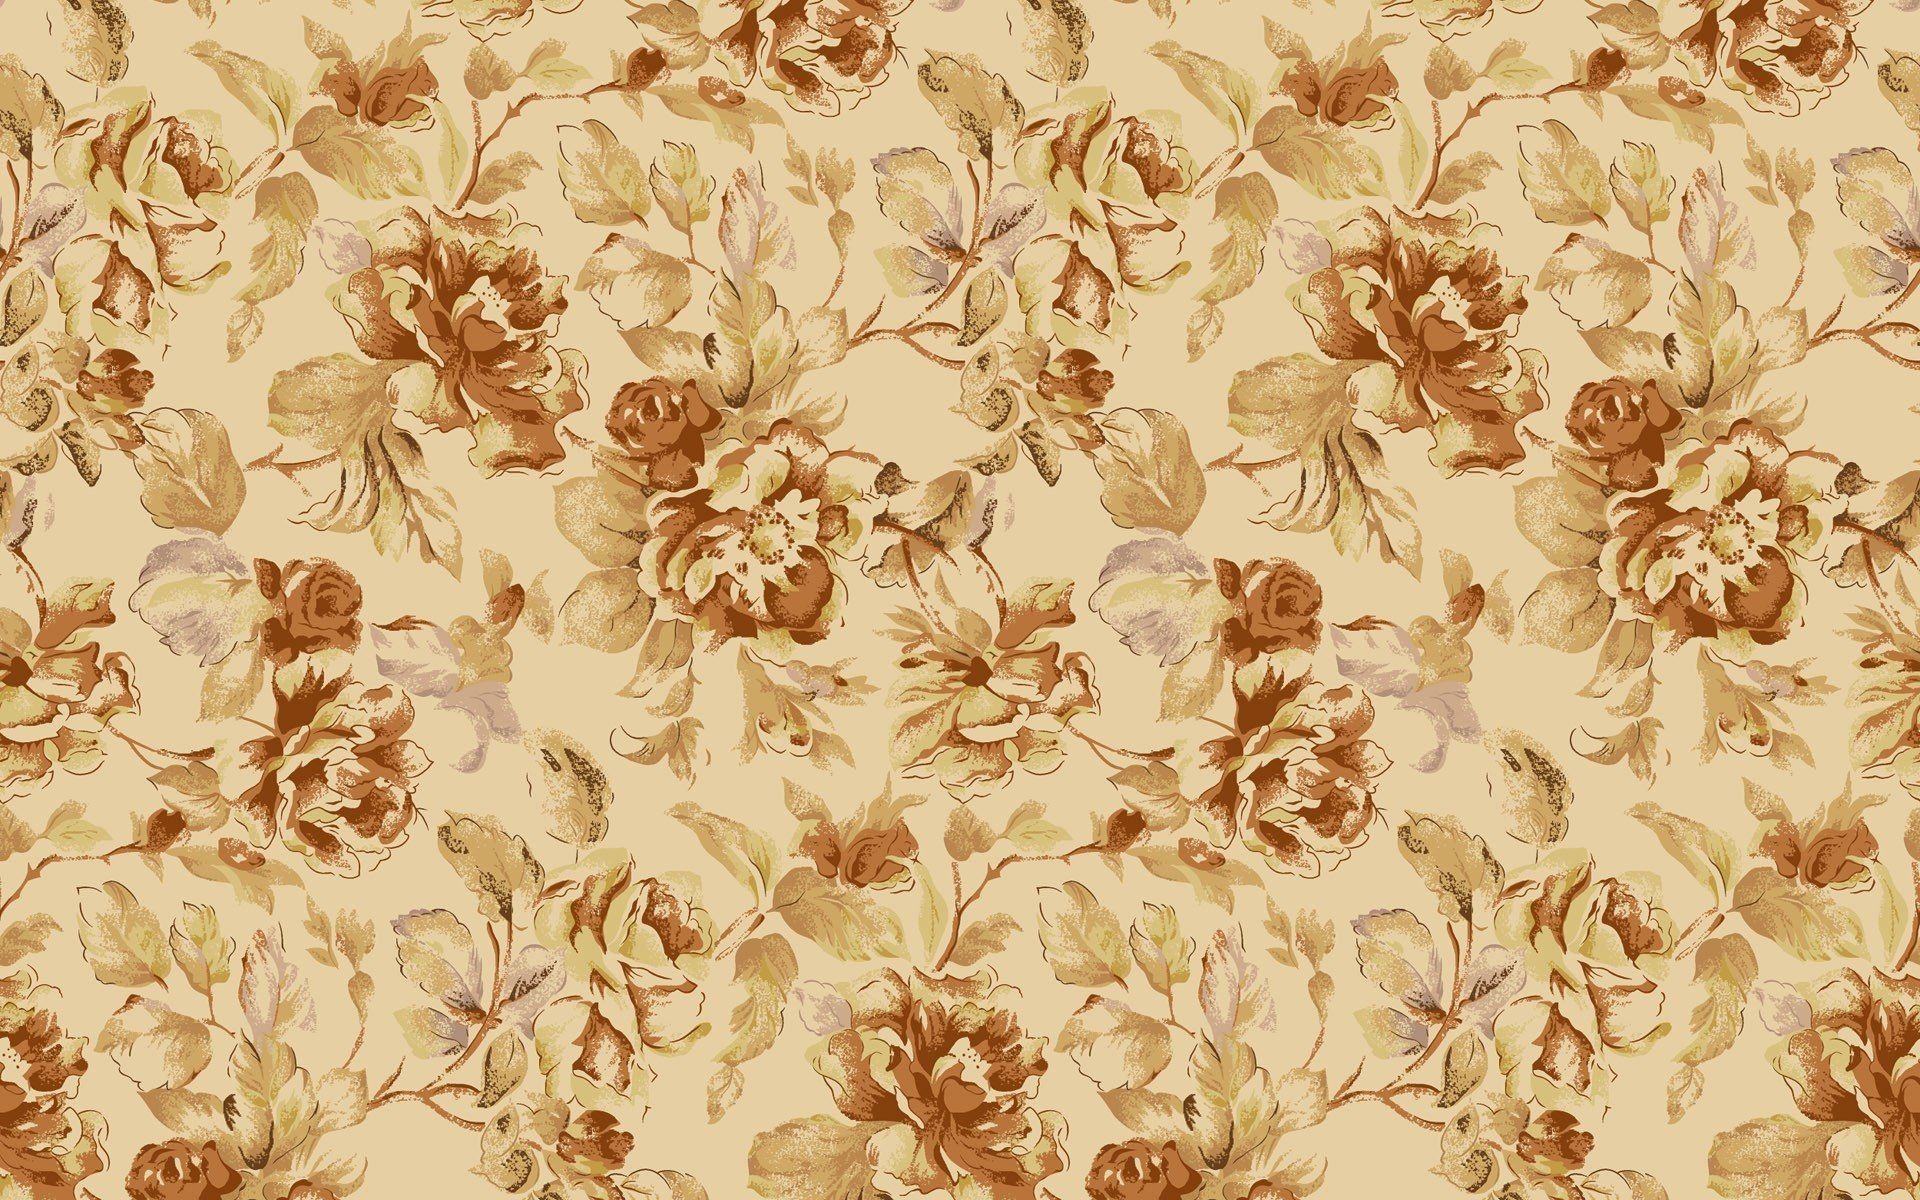 Classic Wallpaper Patterns Vintage Floral Pattern Hd